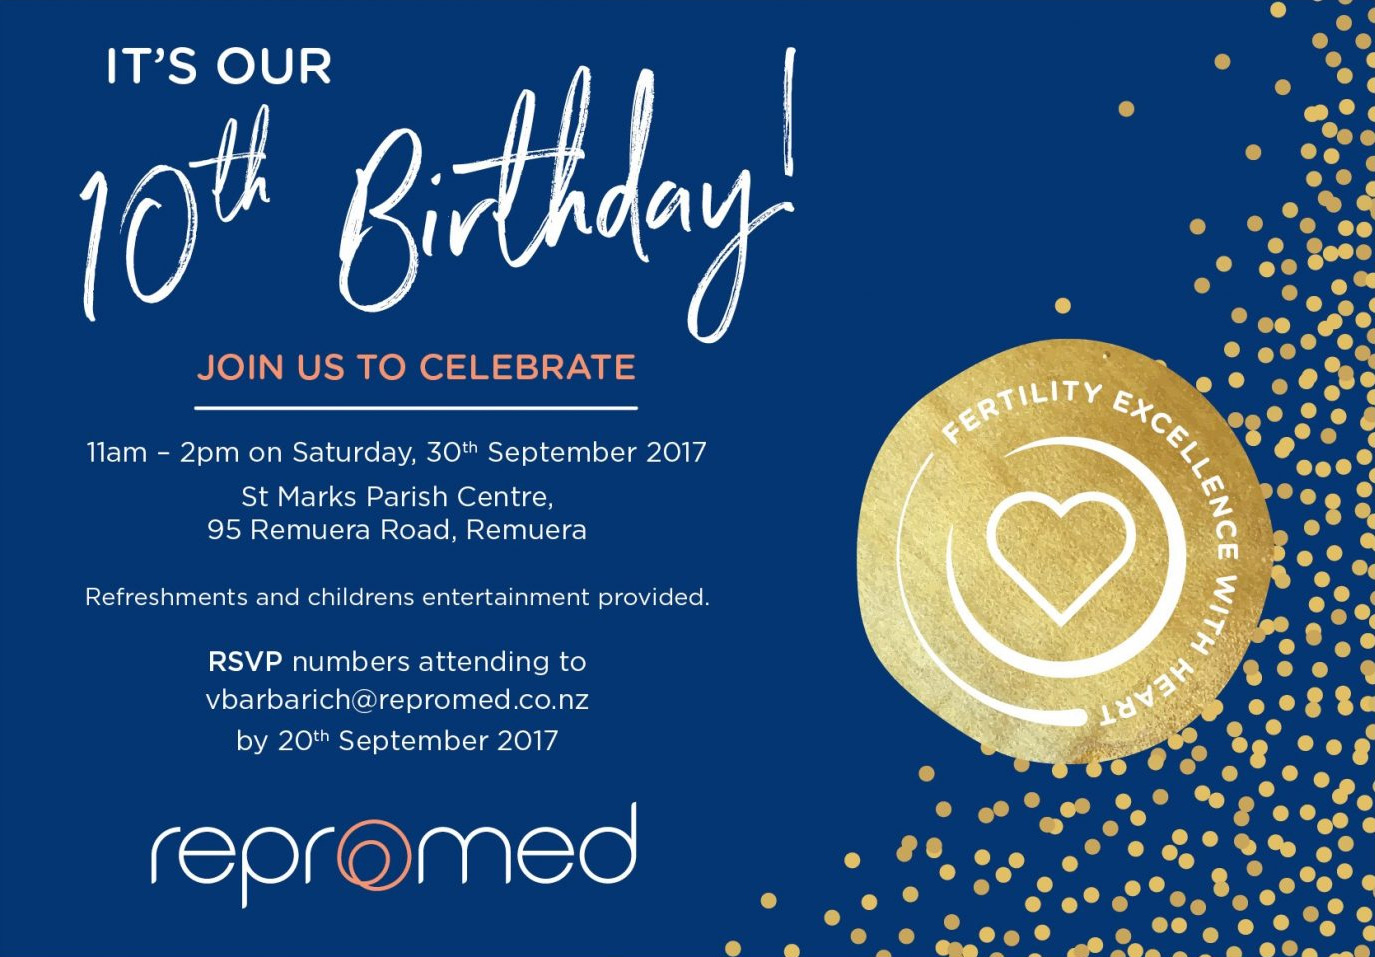 Repromed's 10th Birthday